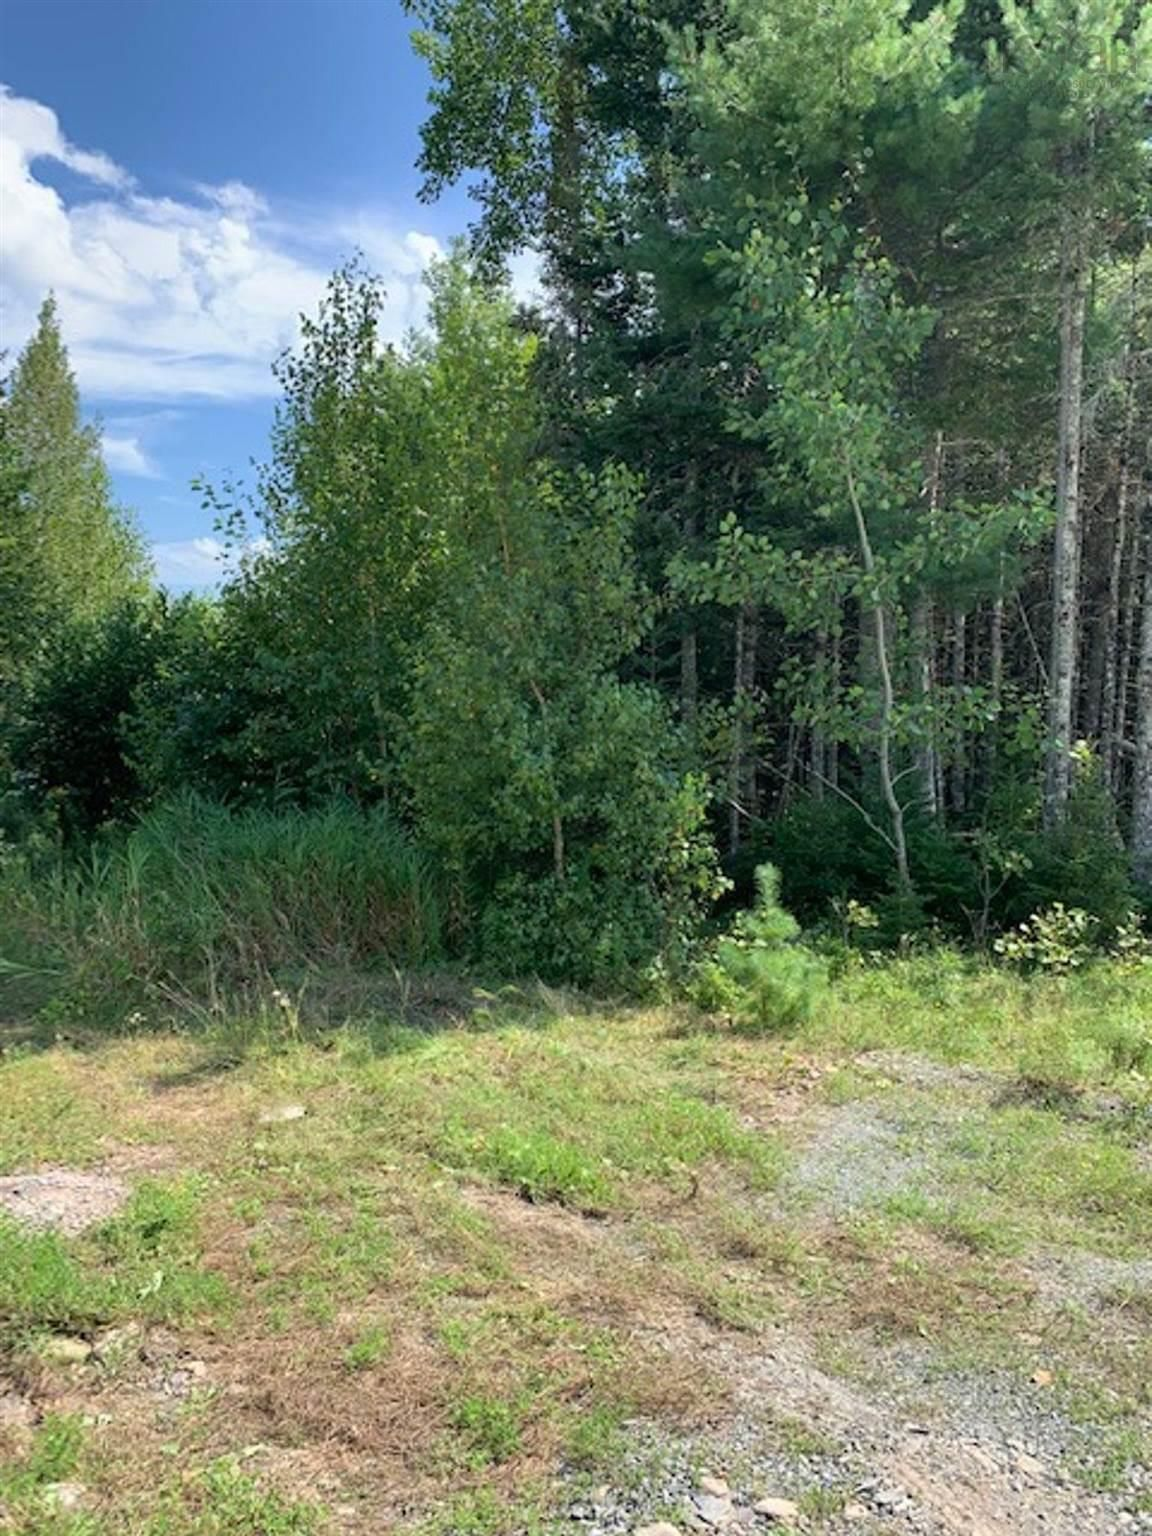 Main Photo: Lot 20 Fairway Avenue in Shubenacadie East: 105-East Hants/Colchester West Vacant Land for sale (Halifax-Dartmouth)  : MLS®# 202122122